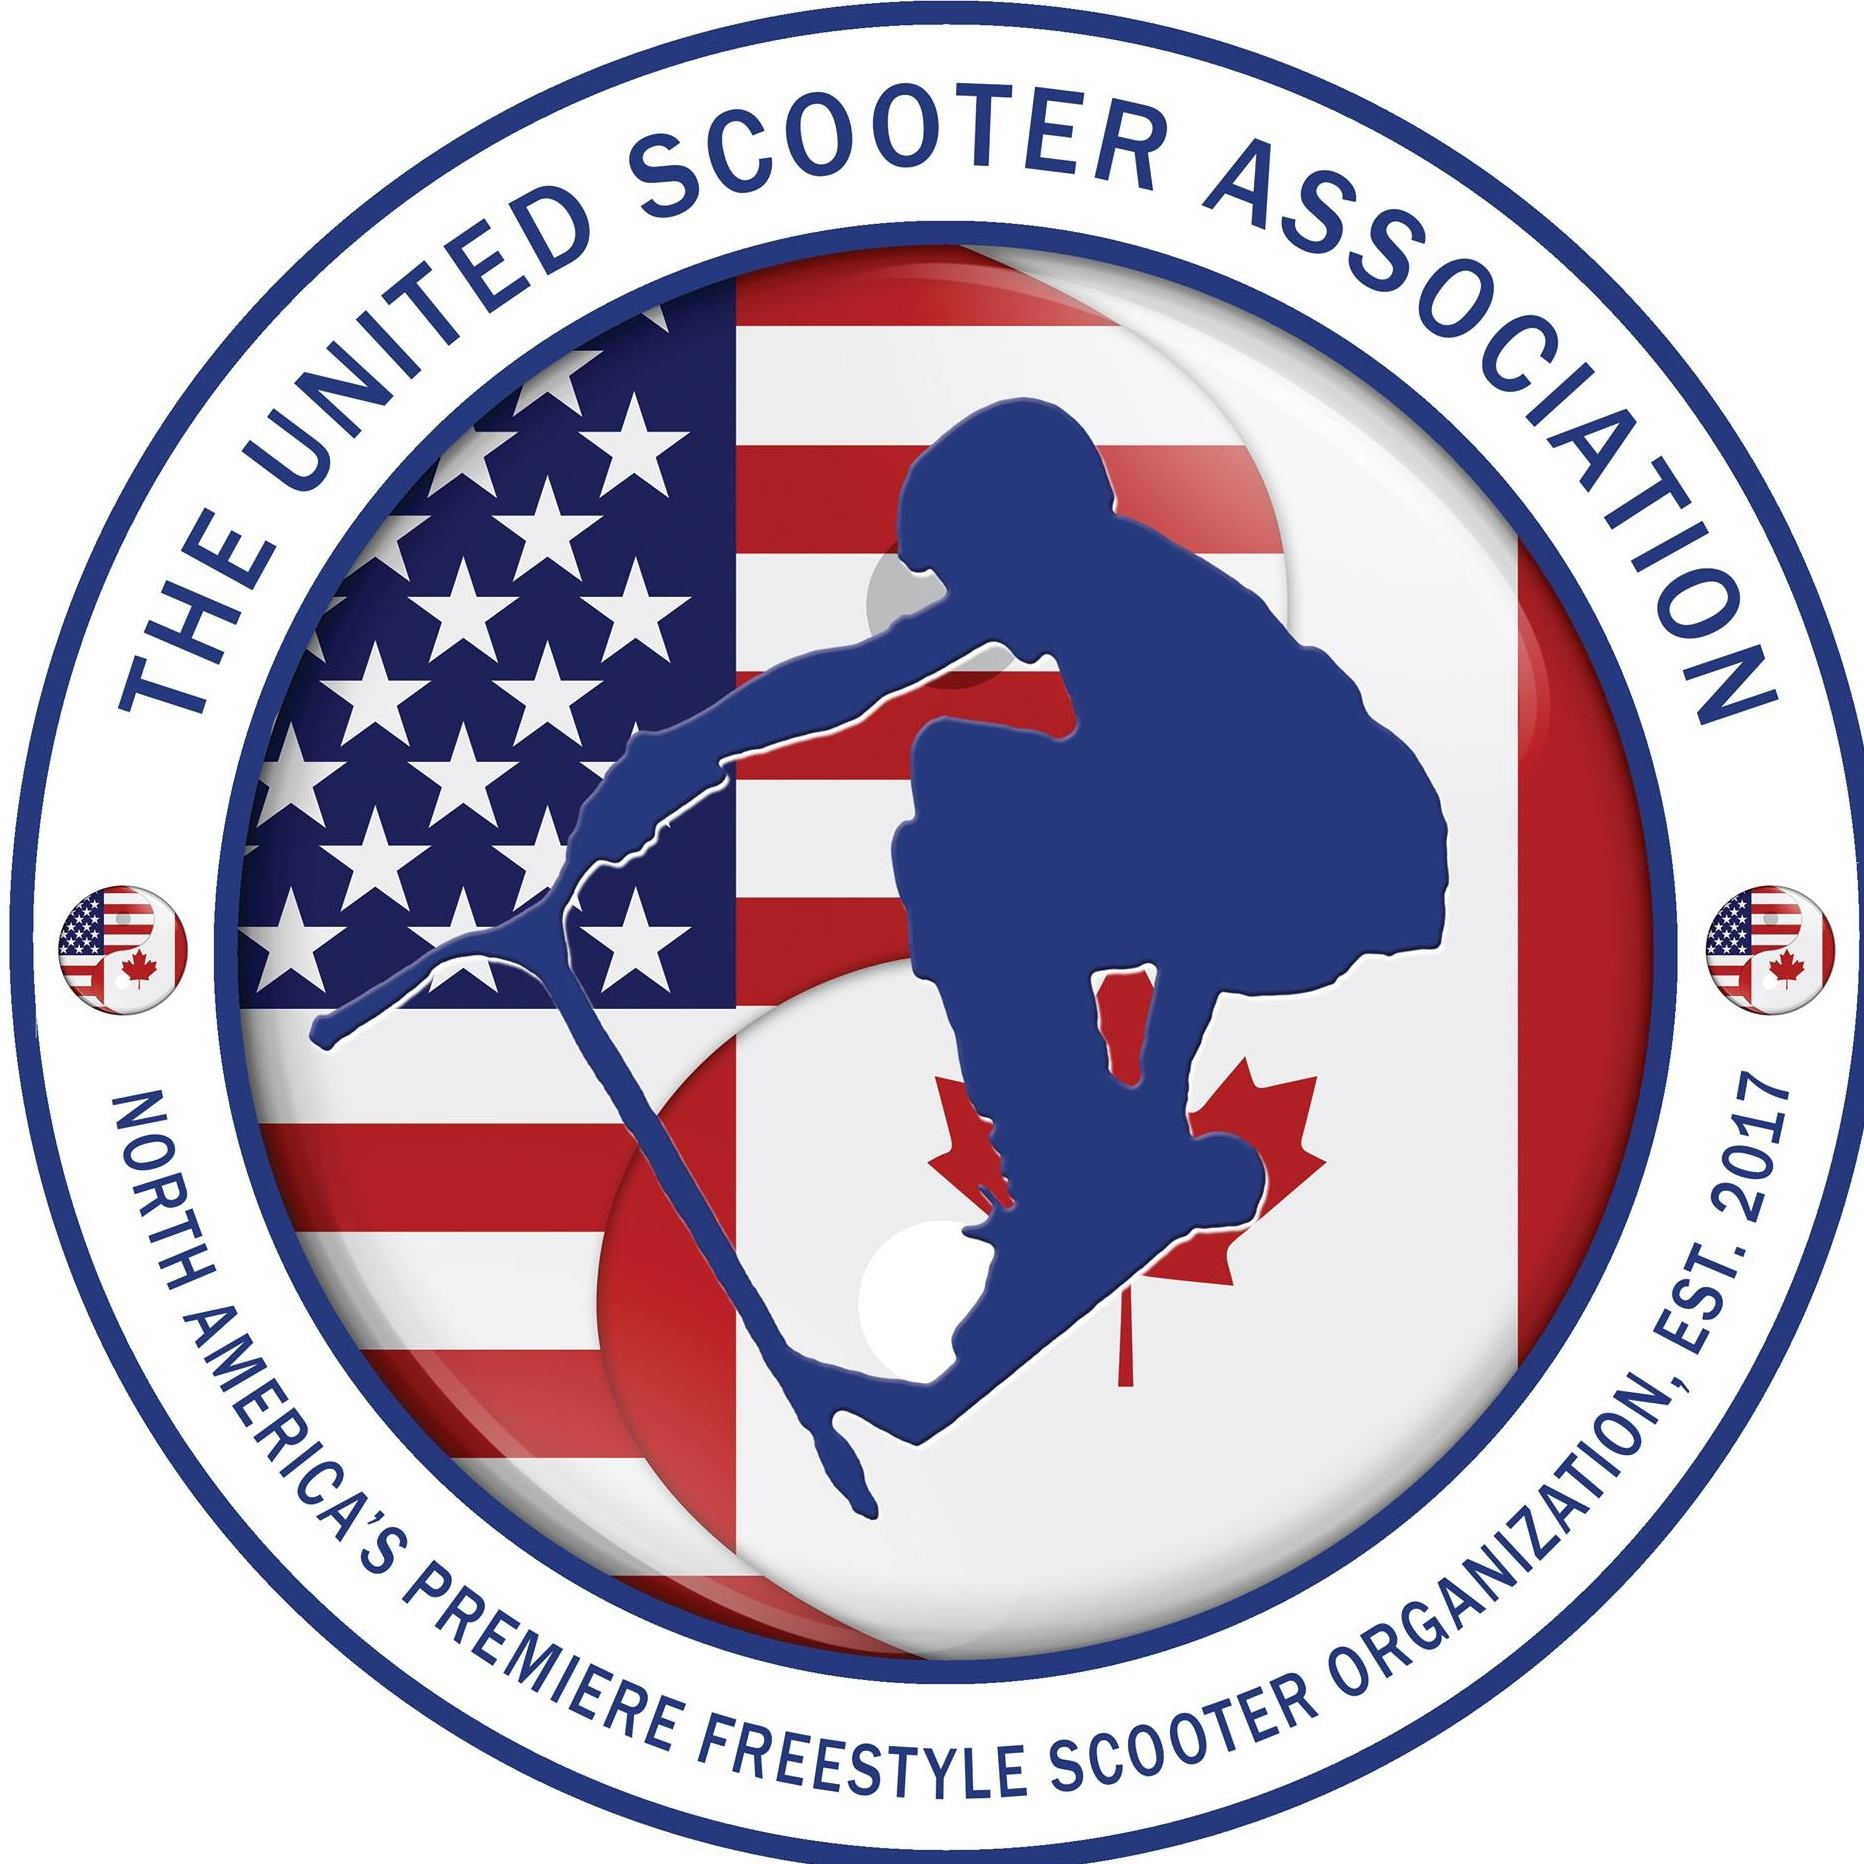 North American Scooter Championship